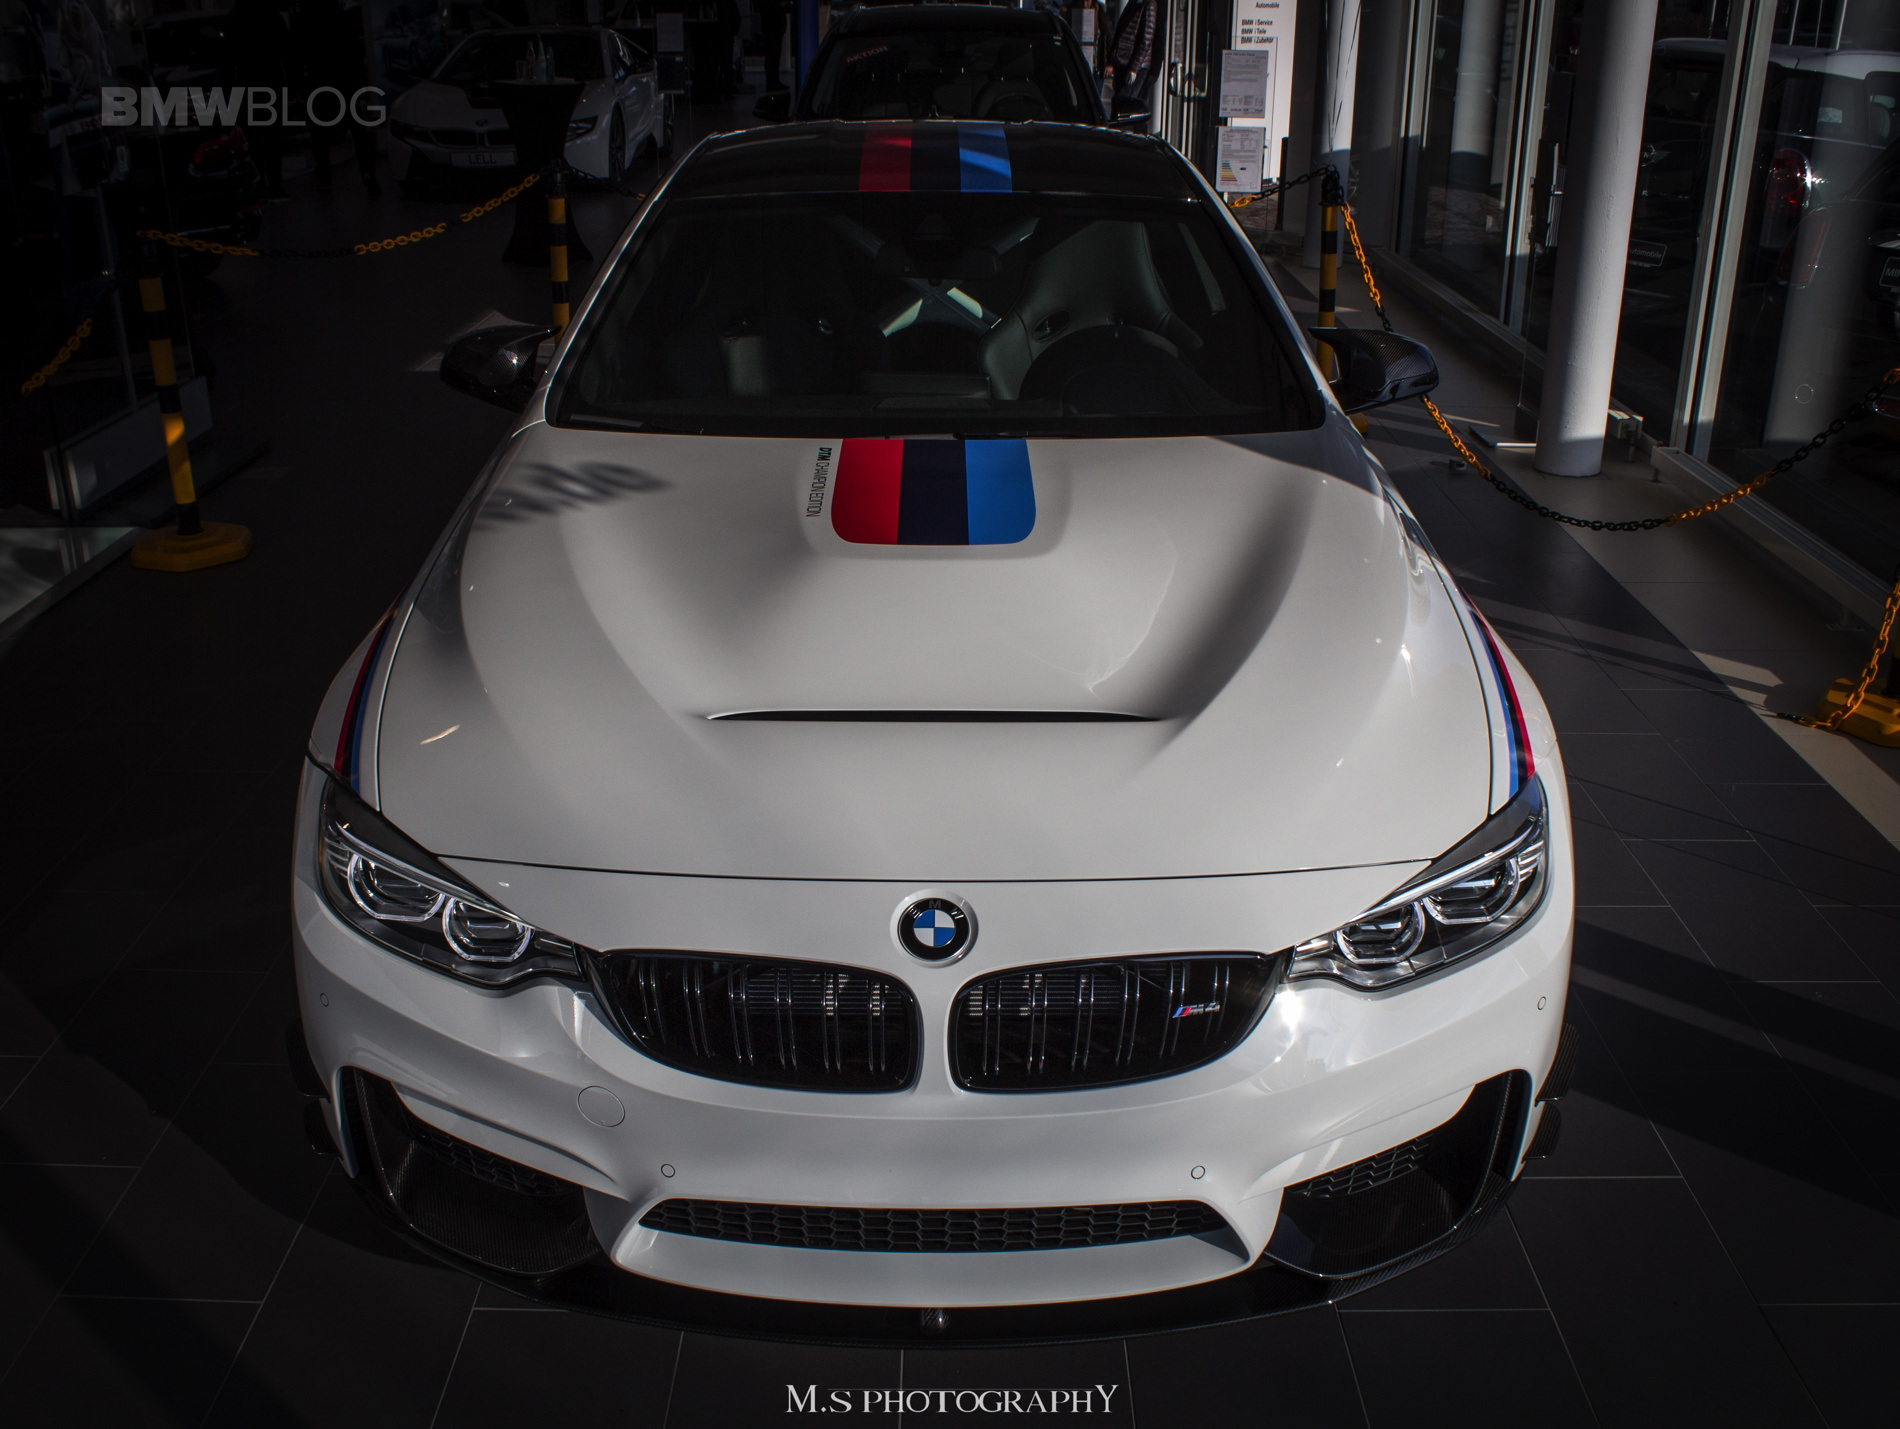 This Is The 1 Of 200 Bmw M4 Dtm Champion Edition